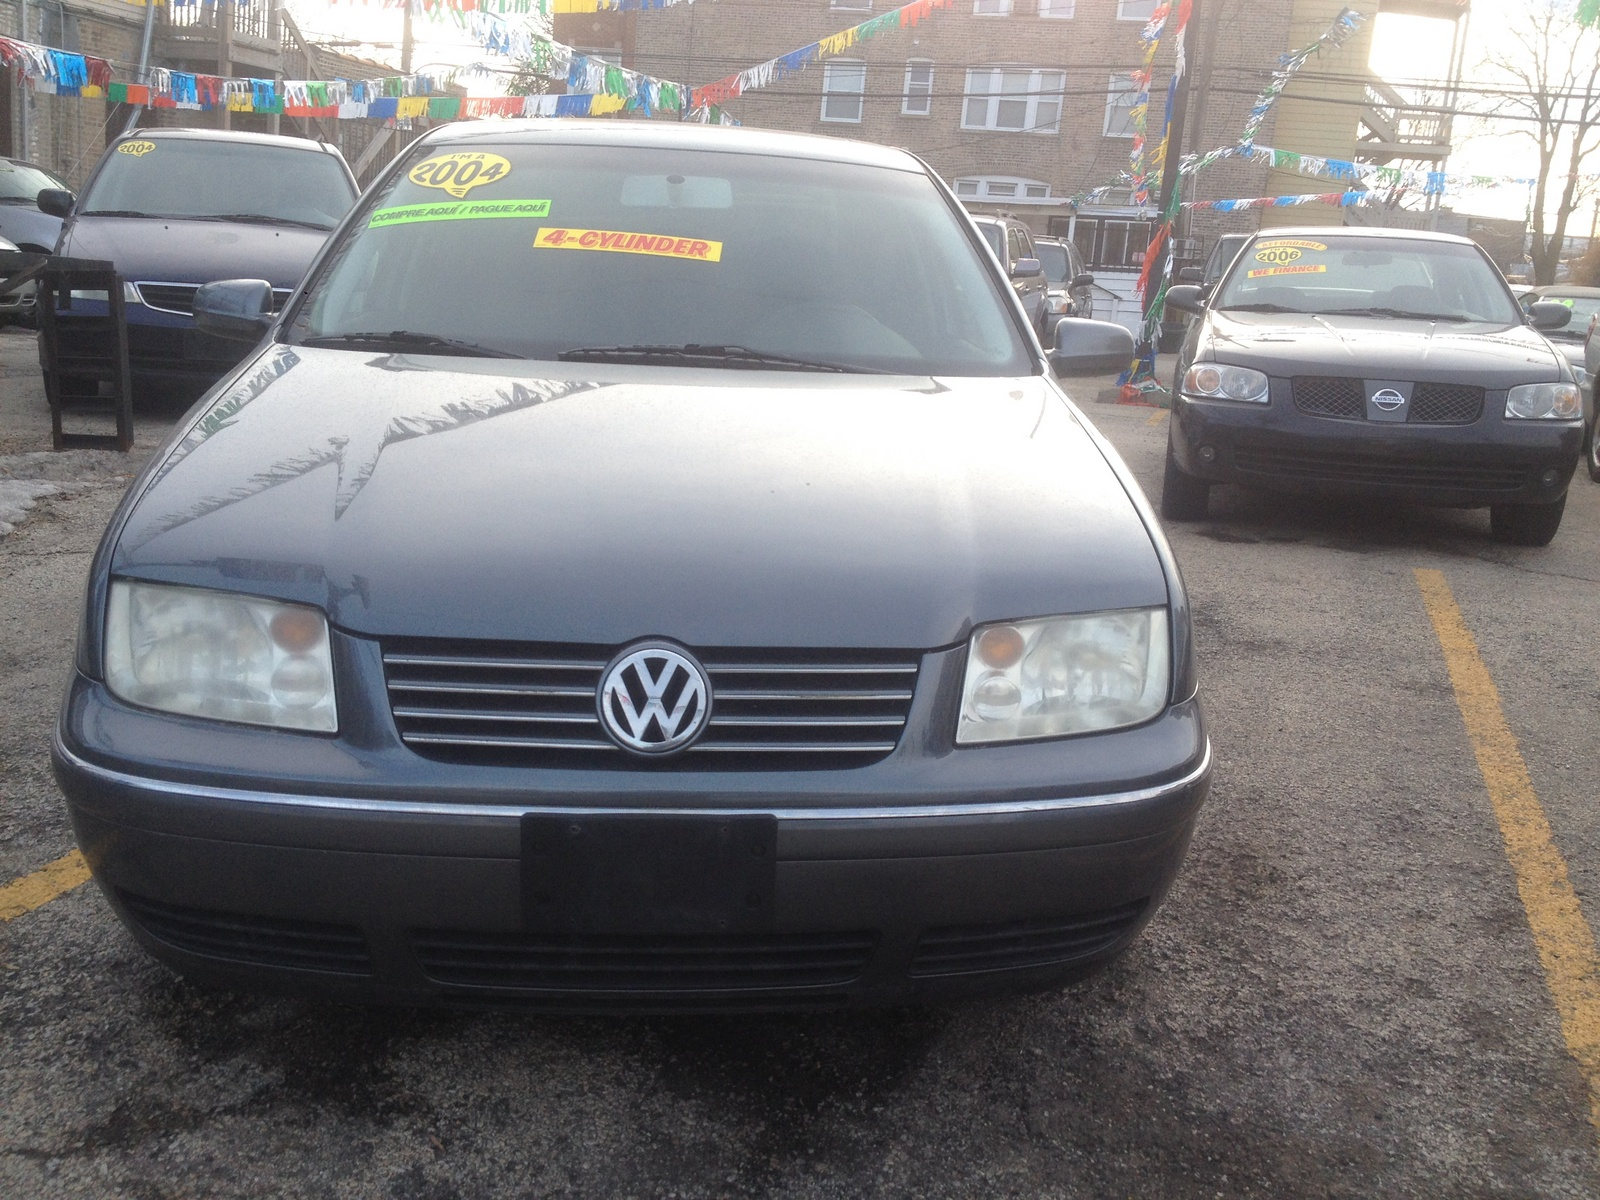 Volkswagen Jetta 2.0 2004 photo - 6